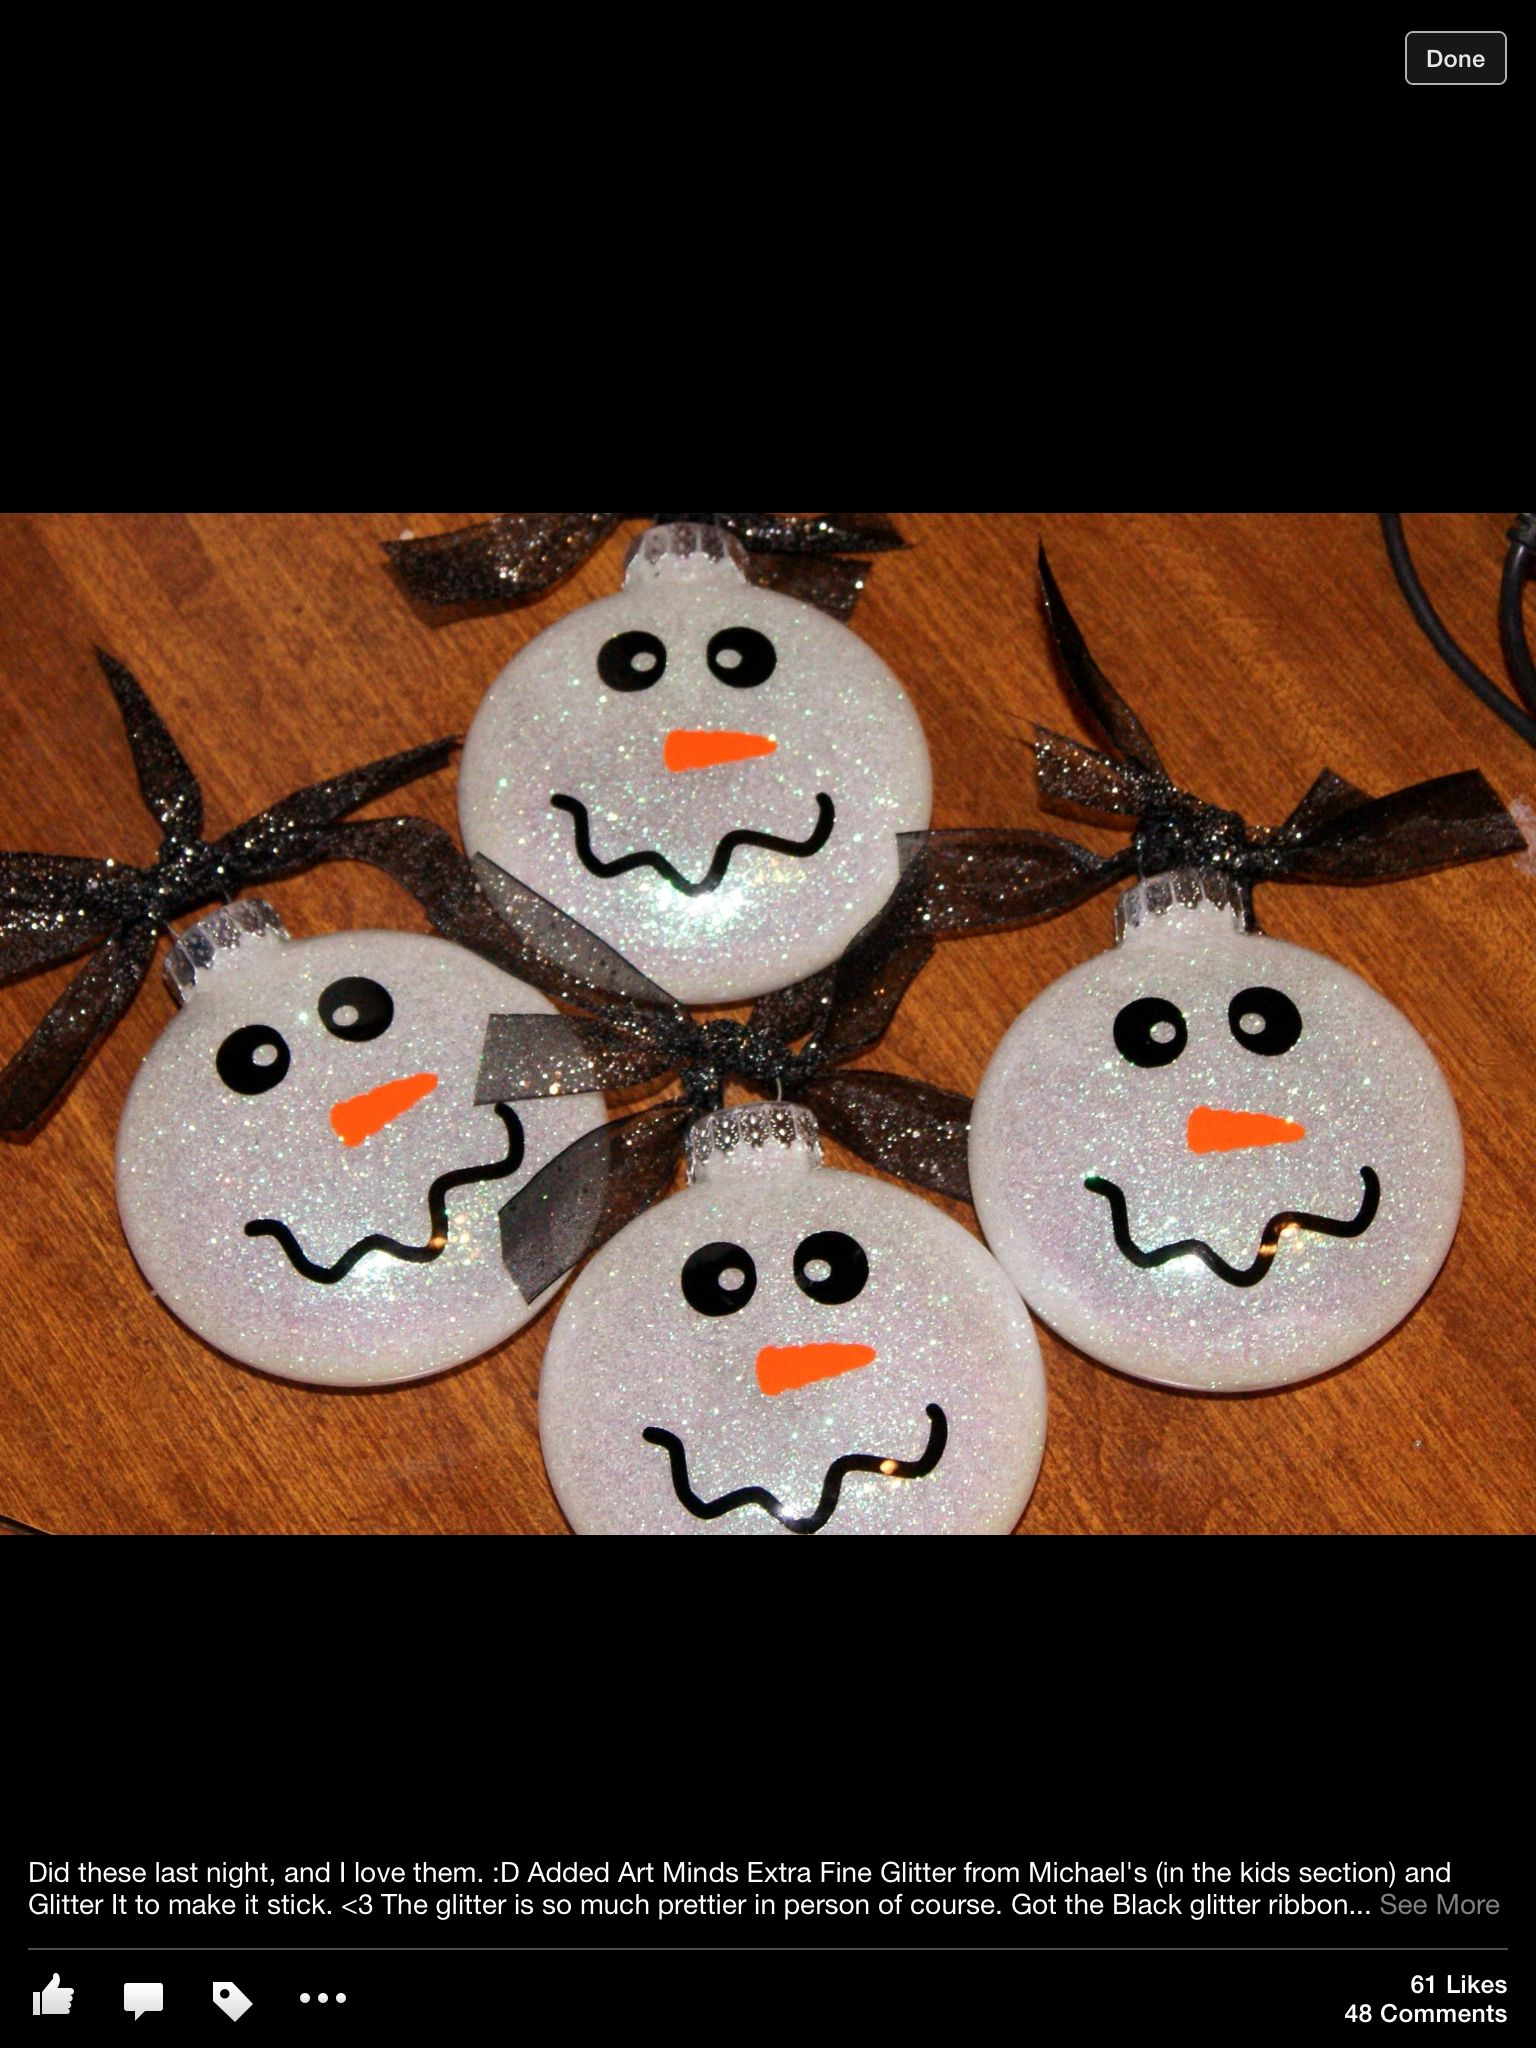 Ornaments with names on them - Snowmen Ornaments Would Love For Them To Put Int The Glitter And Make The Face Then They Could Write Their Name On The Back